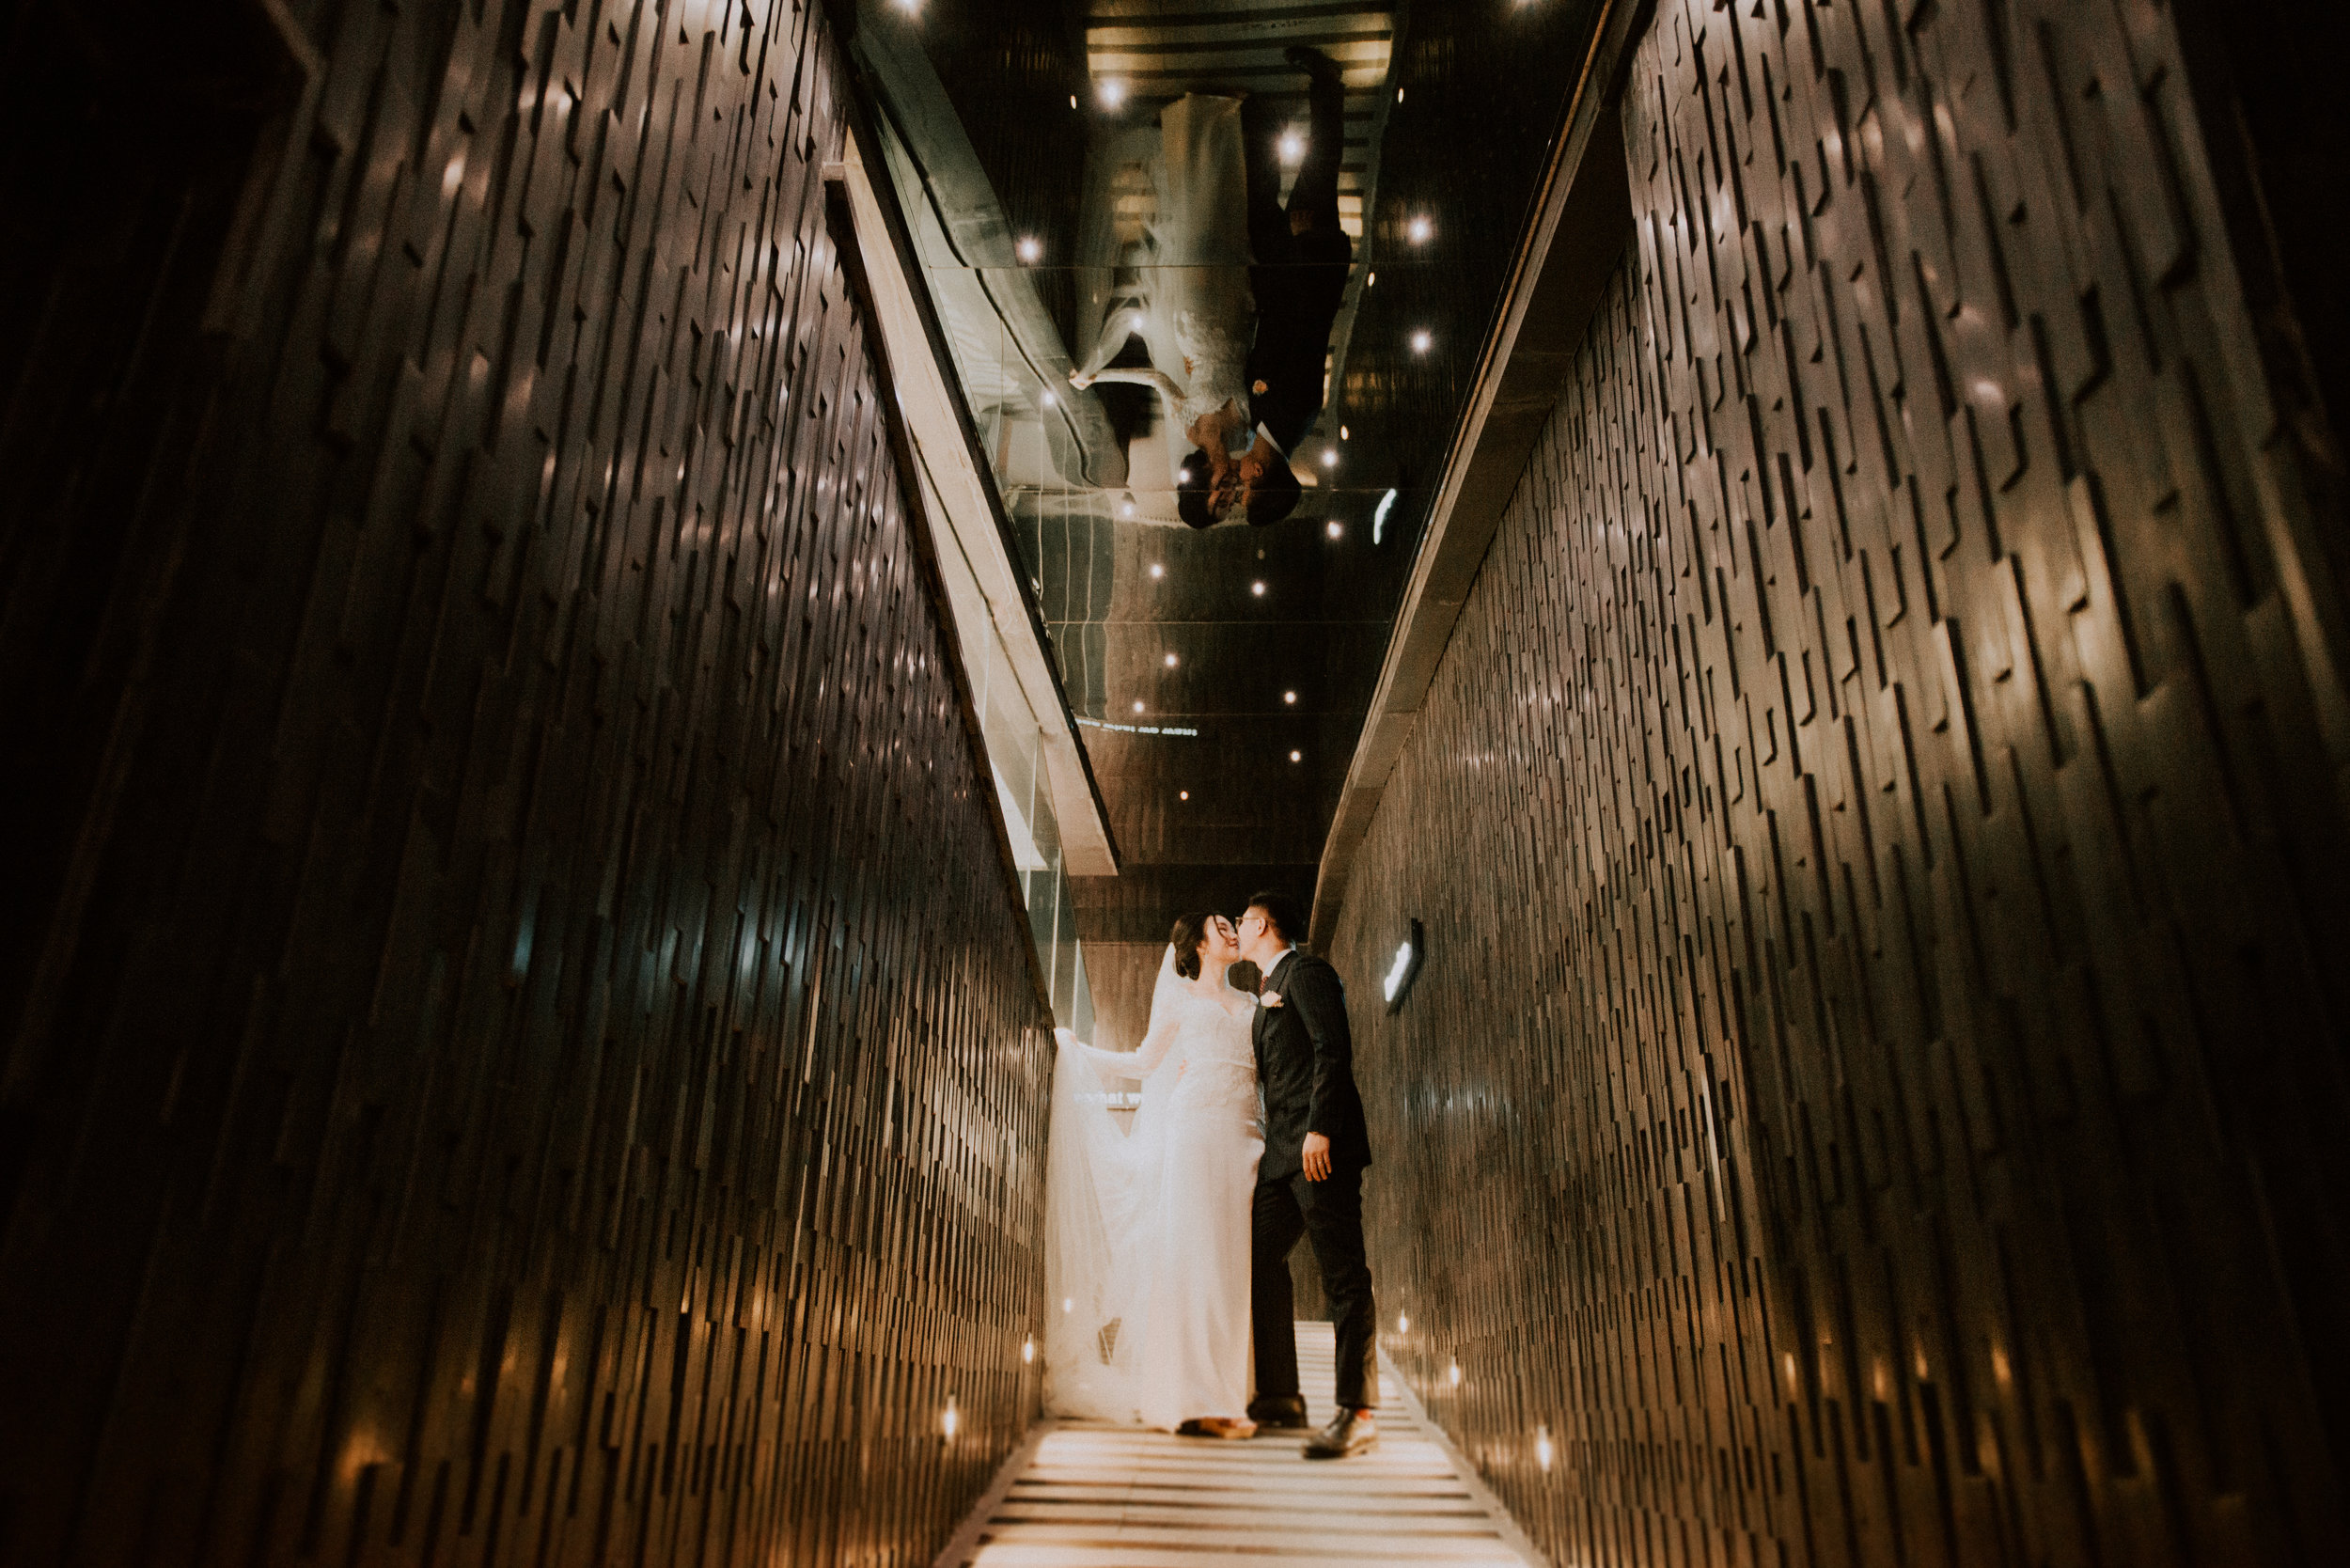 LOVE ON TOP - Trang & Duc Anh vows exchange on Top of Hanoi